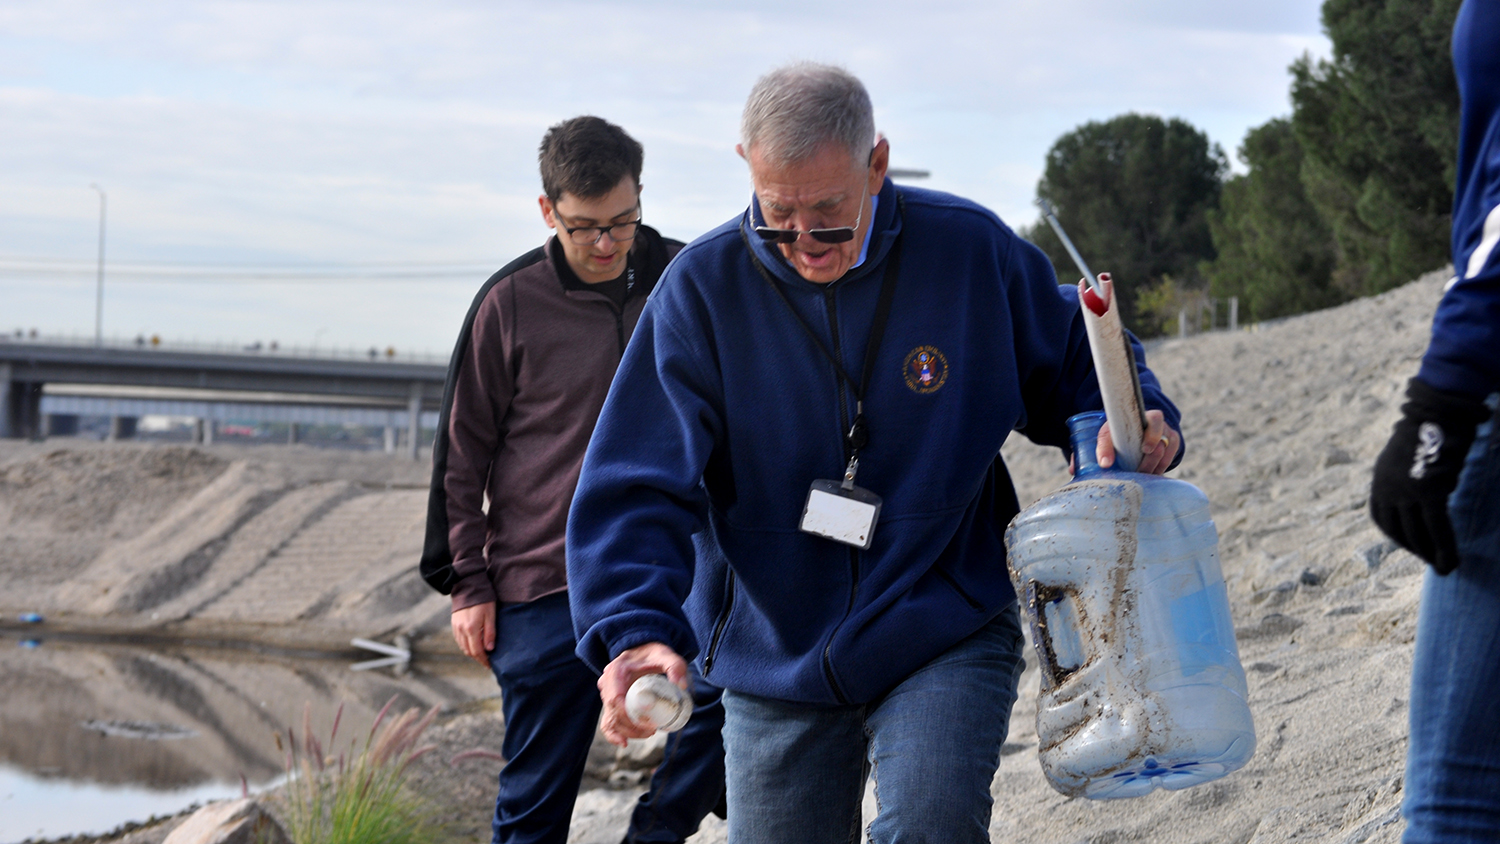 North OC Commits to 700 New Homeless Shelter Beds; South County Identifies Zero